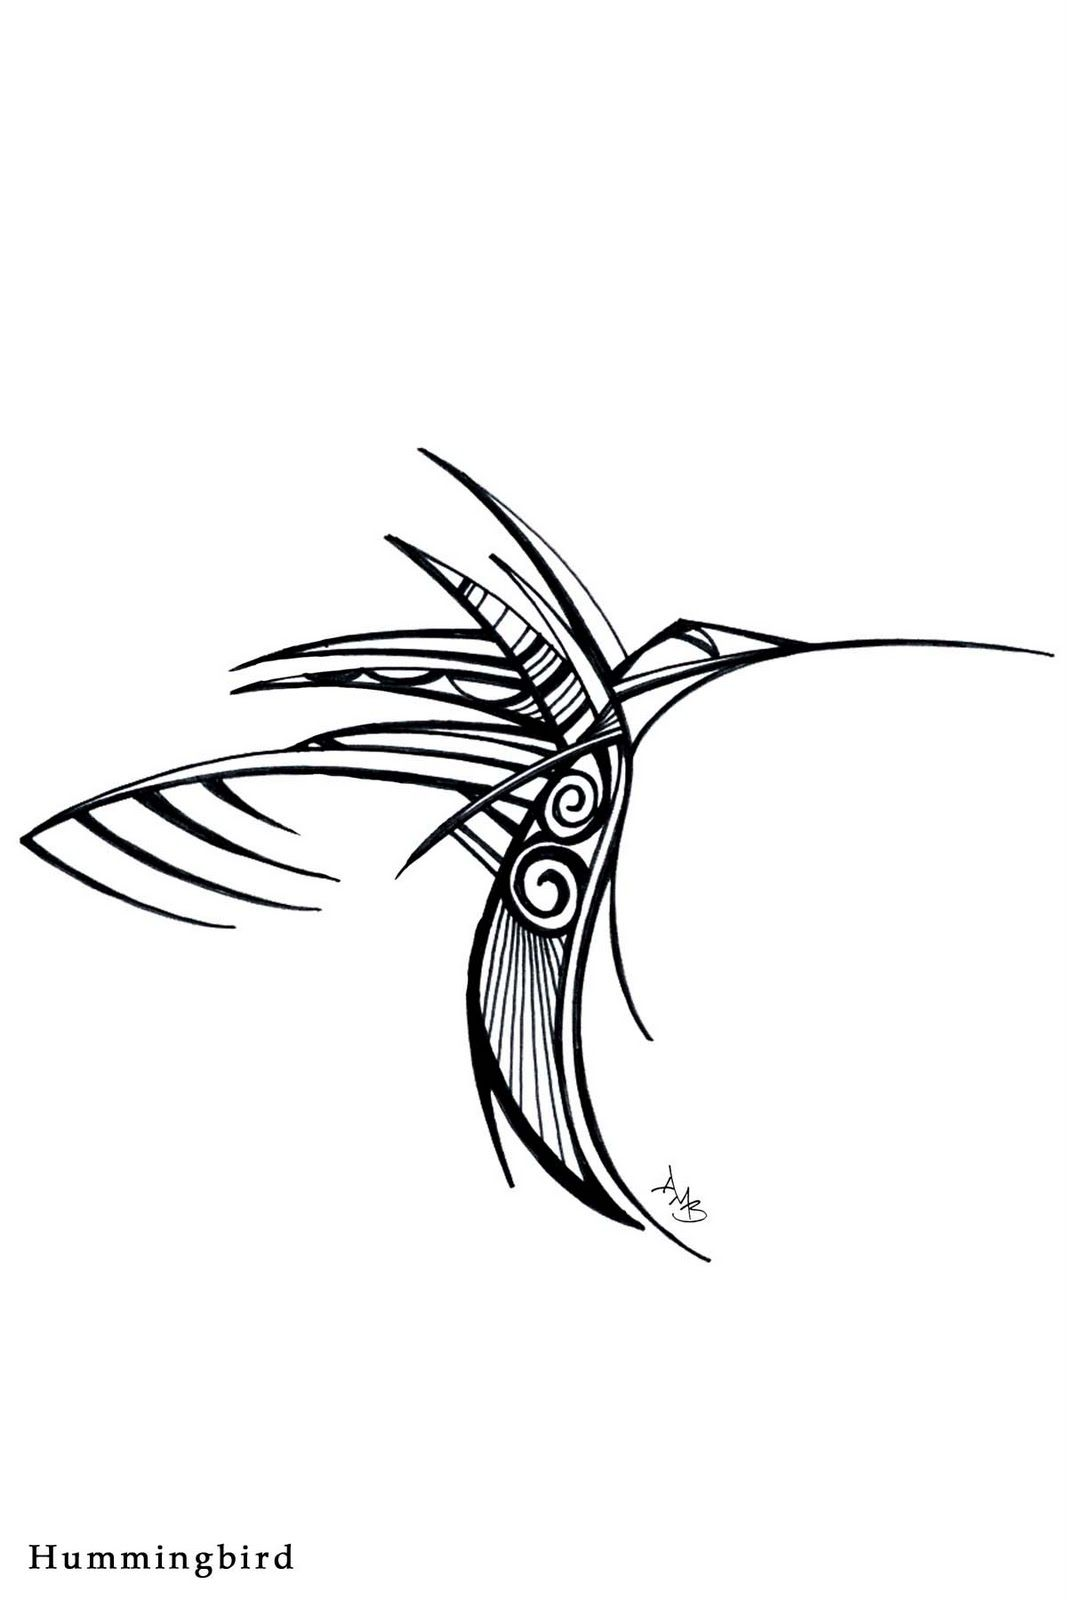 1067x1600 Hummingbird Drawing Steampunk For Free Download